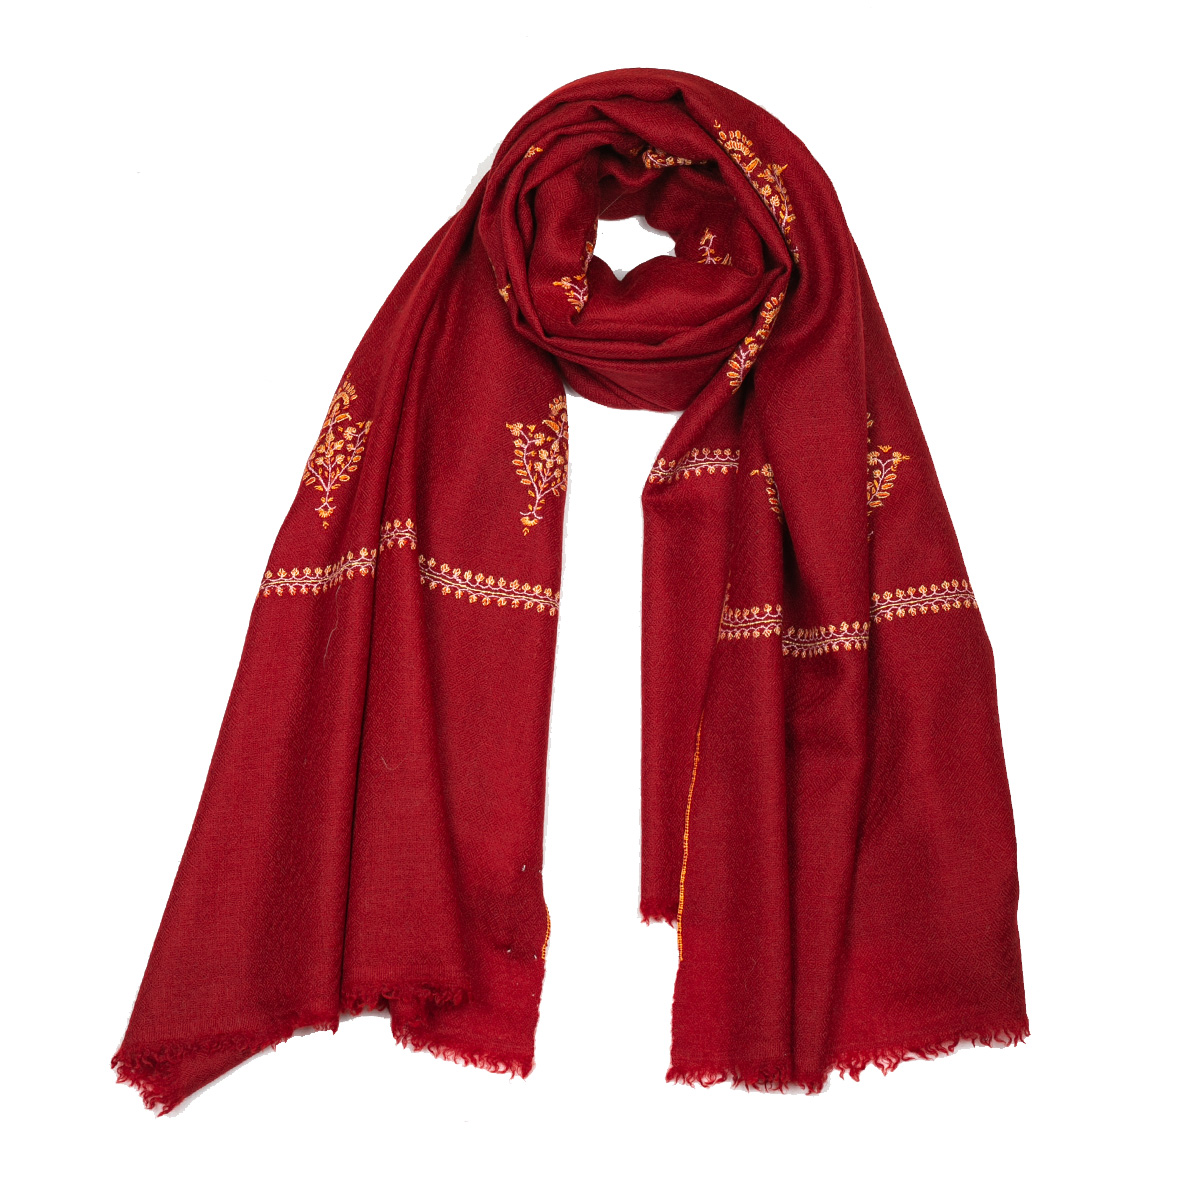 Hand Embroidered Cashmere Pashmina Stole - Red Orange